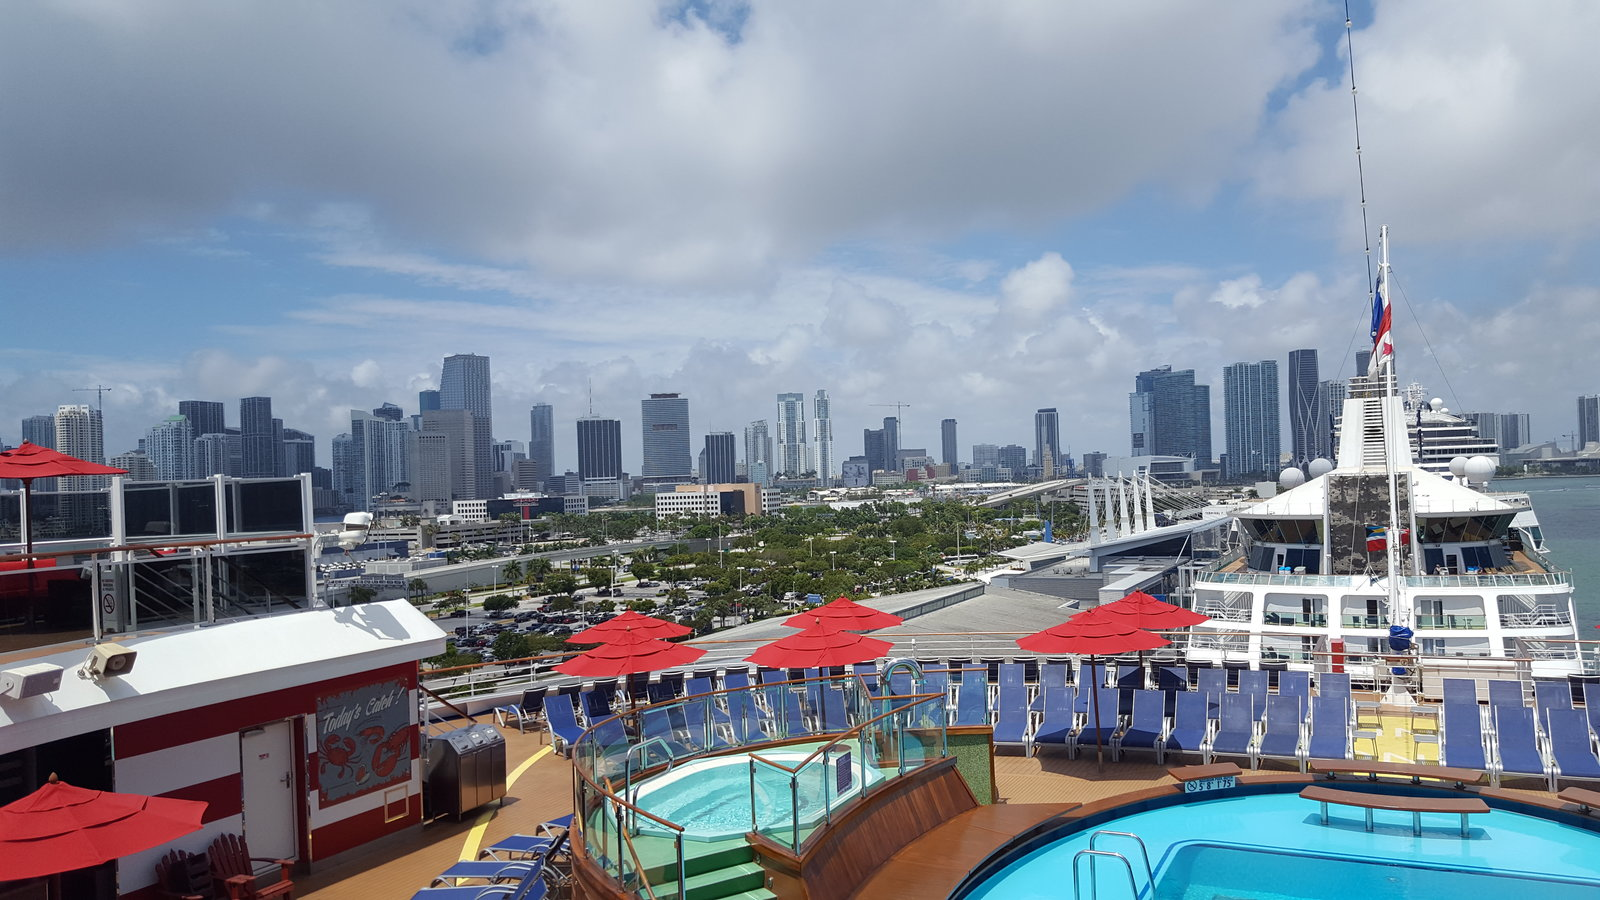 Carnival Horizon - Miami - May 2019.jpg